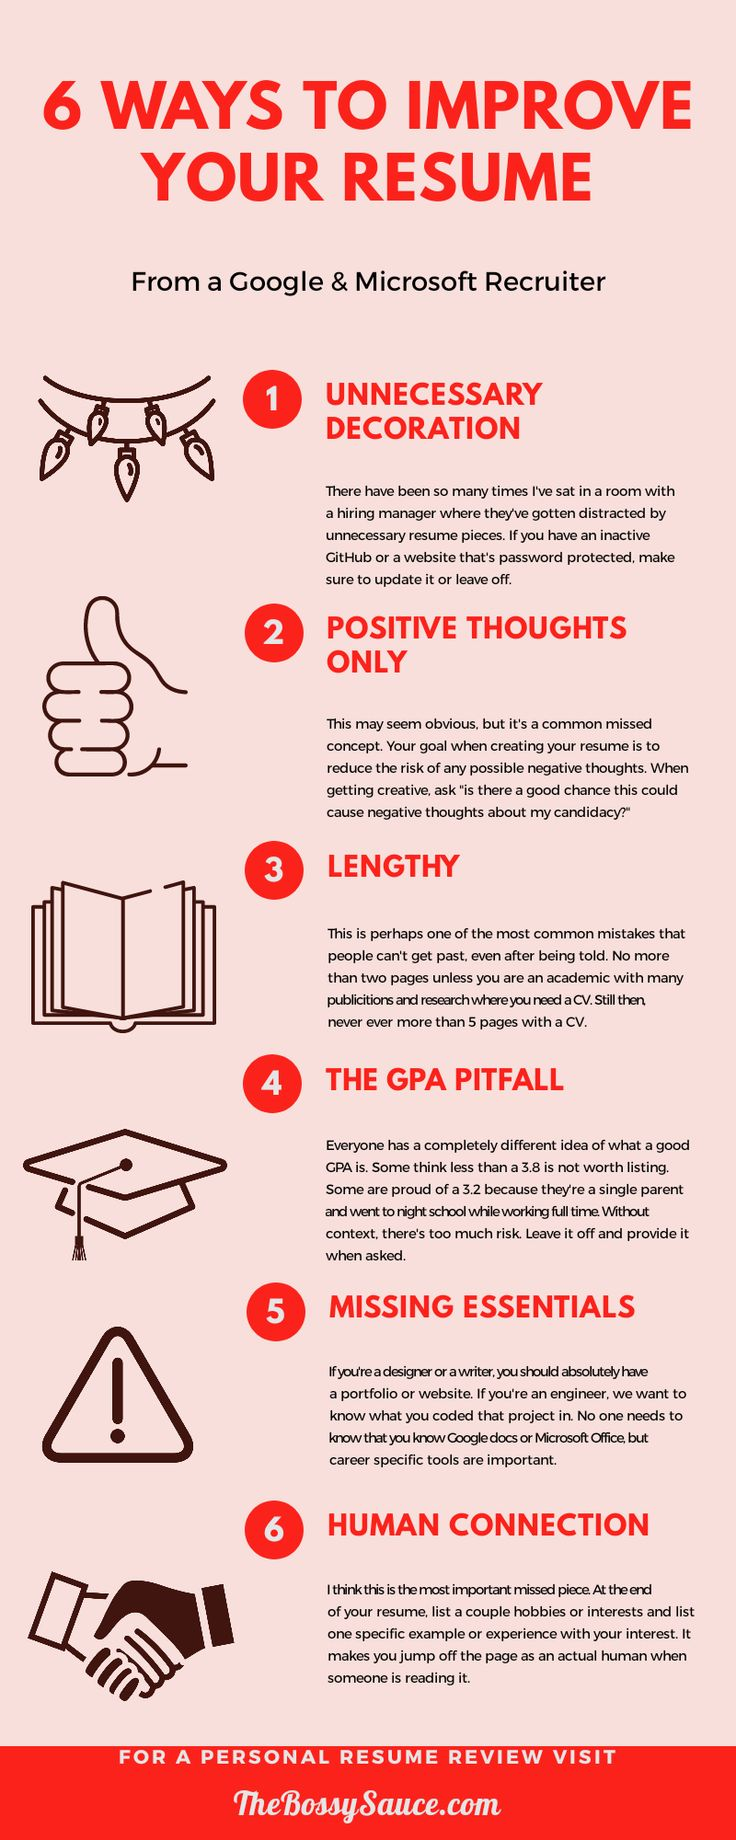 6 Ways To Improve Your Resume, Infographic by a Google